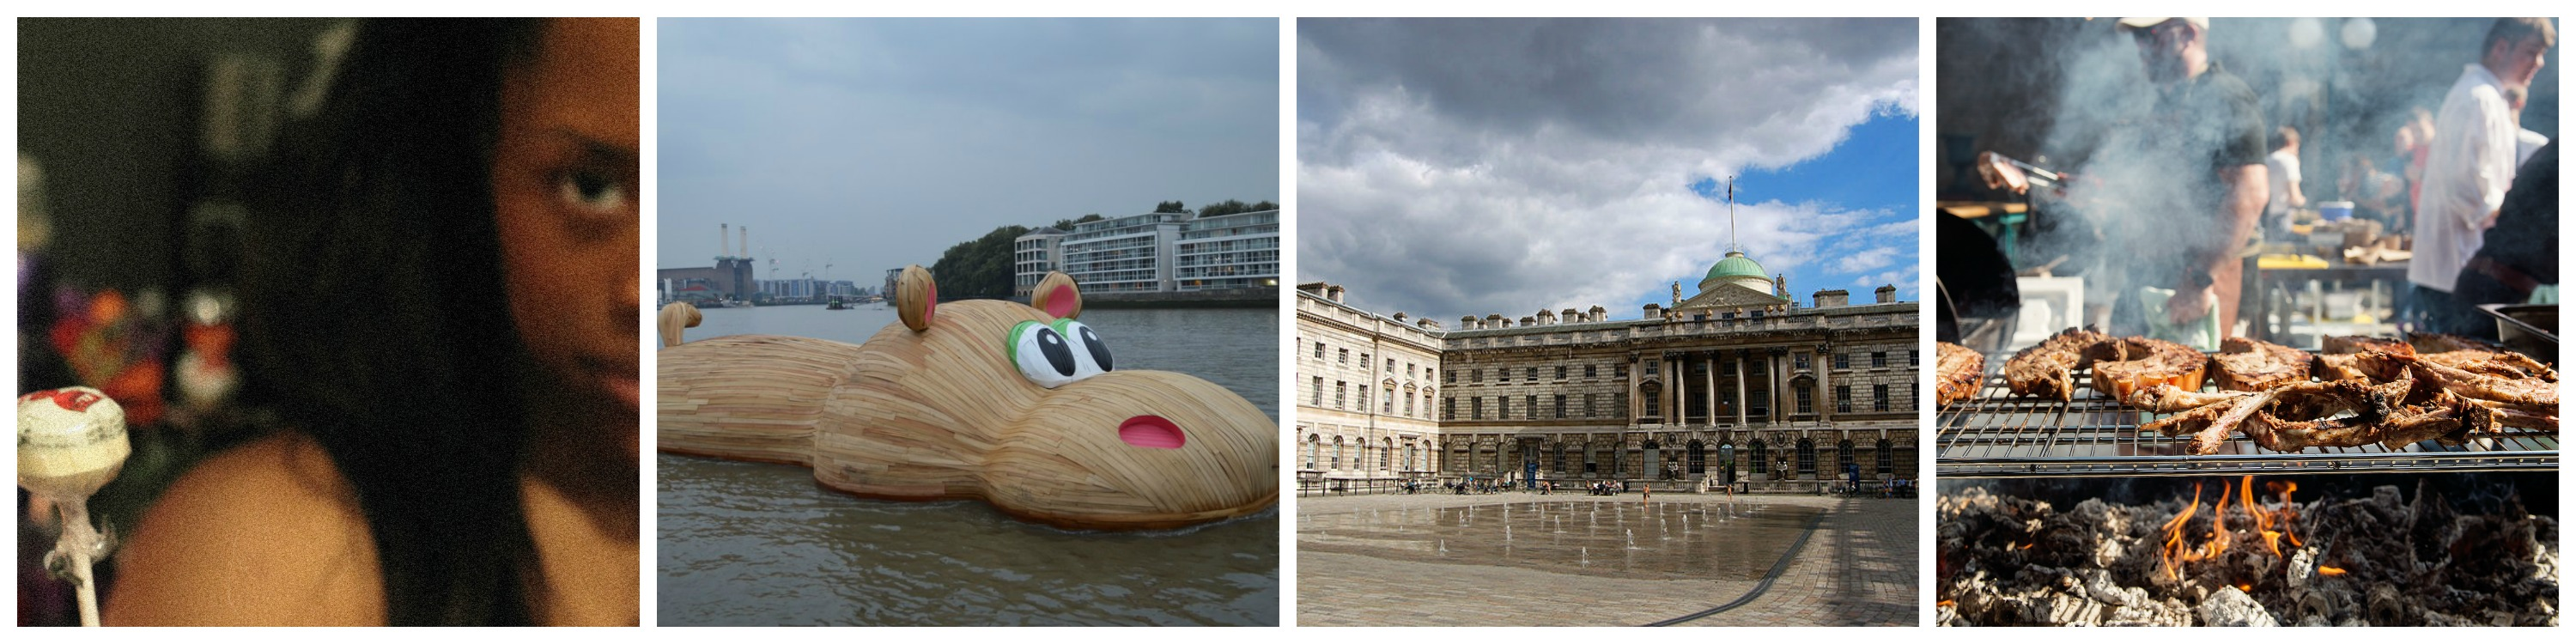 'Expensive Sh*t' by Adura Onashile Courtesy of the Southbank Centre / HippopoThames, a huge wooden hippo designed by Dutch artist Florentijn Hofman floats up the river for Totally Thames 2014 ©Matt Brown/Flickr / Somerset House, host of Bjork Digital ©Jan van der Crabben/Wikicommons / BBQ at Meatopia ©Tom Gold./Meatopia